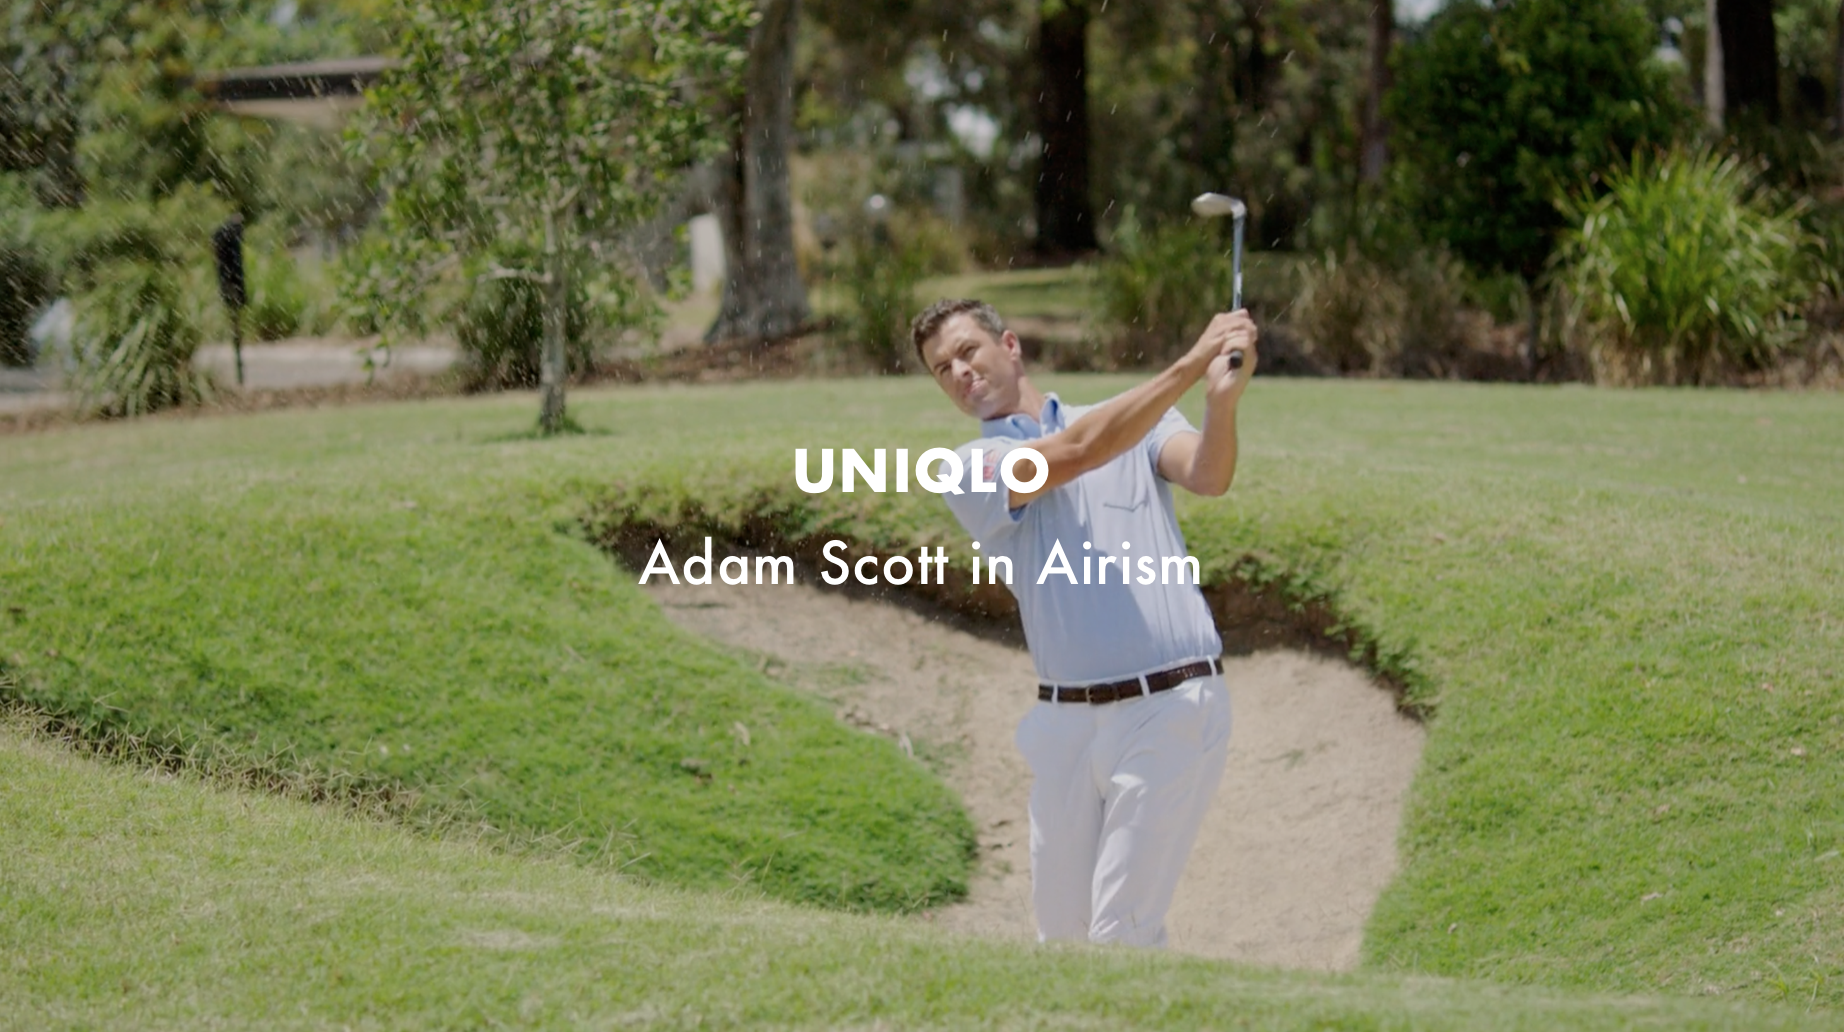 Uniqlo - Adam Scott